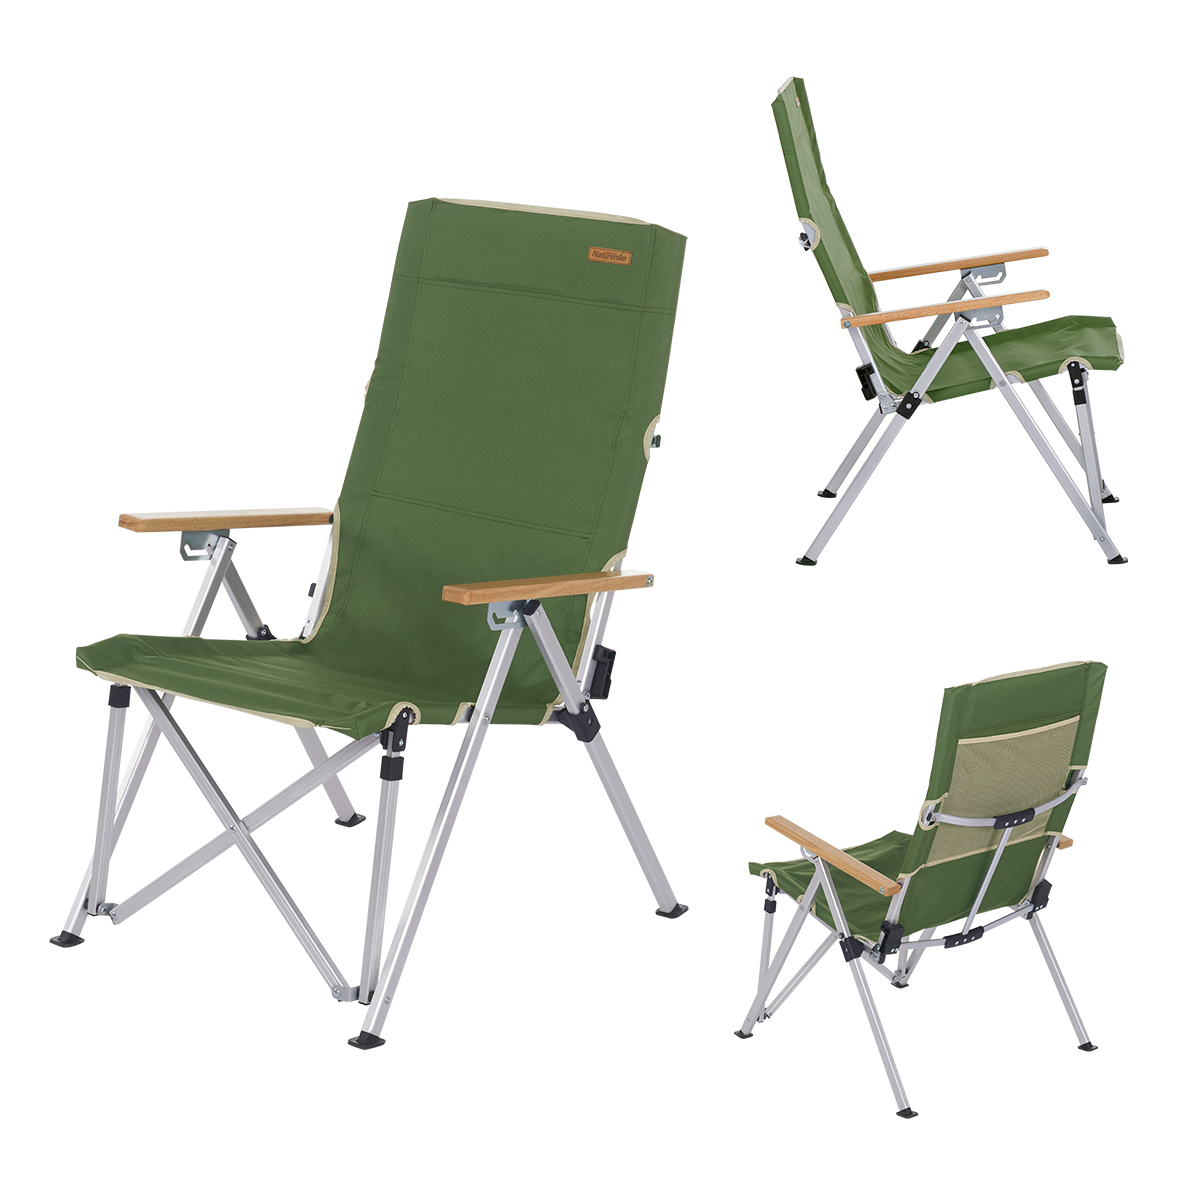 Naturehike 600d oxford cloth portable lightweight folding chaise lounge chair recliner for fishing beach camping picnic